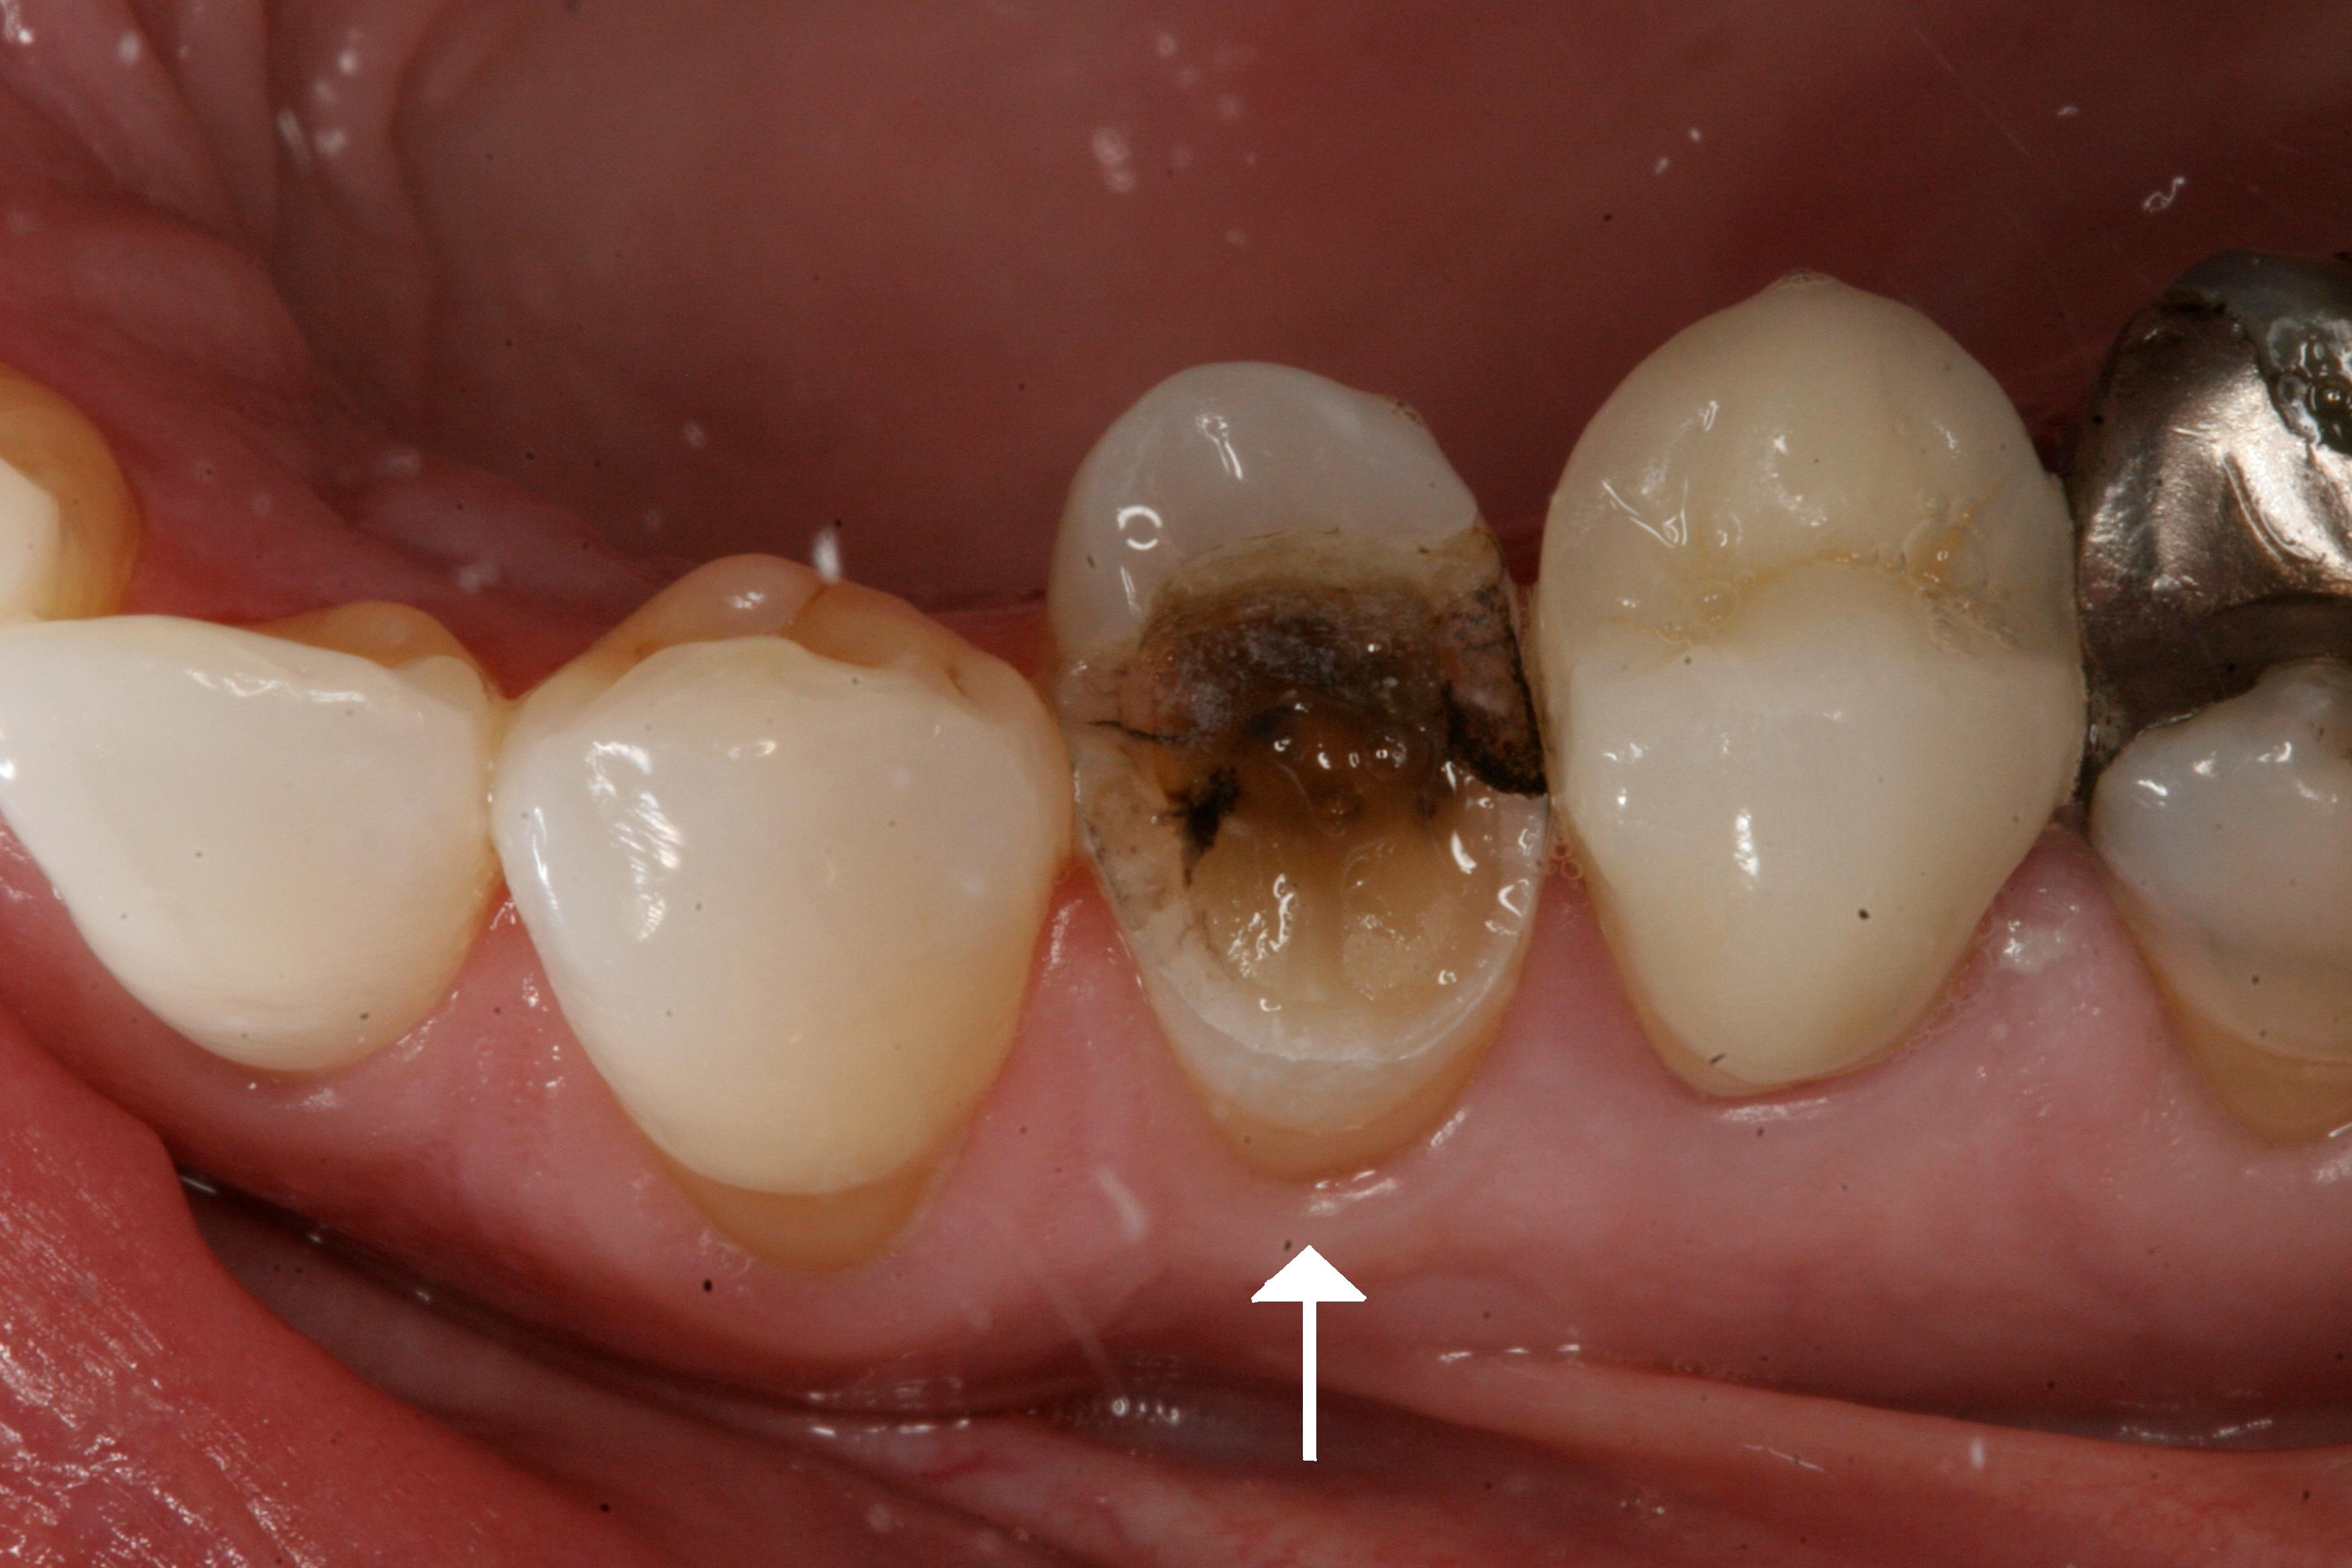 Fractured Tooth